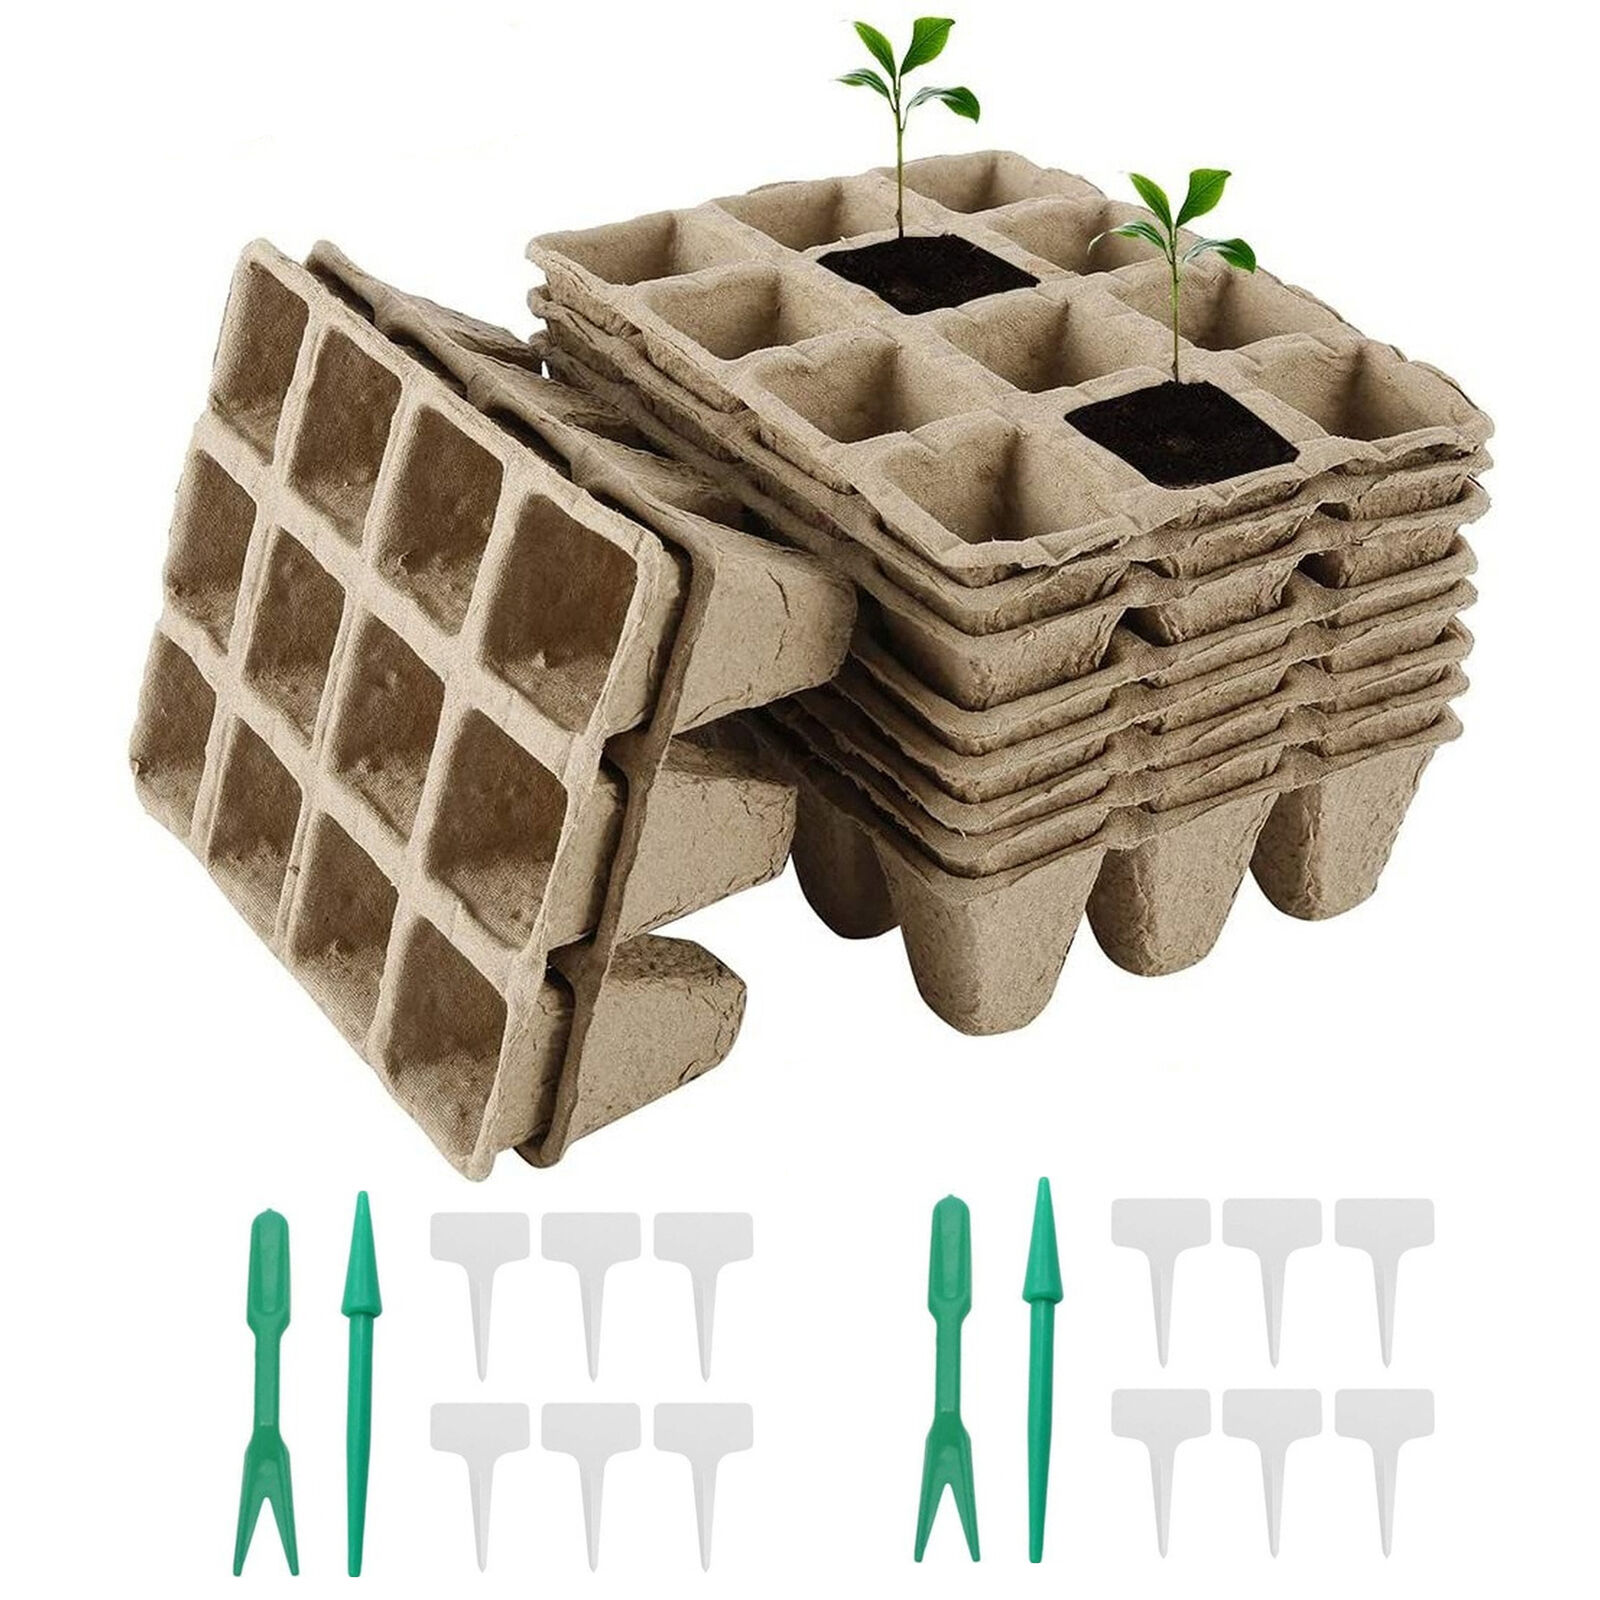 16pcs Seed Starter Trays Biodegradable Pots Germination Tray with 12 Plant Label